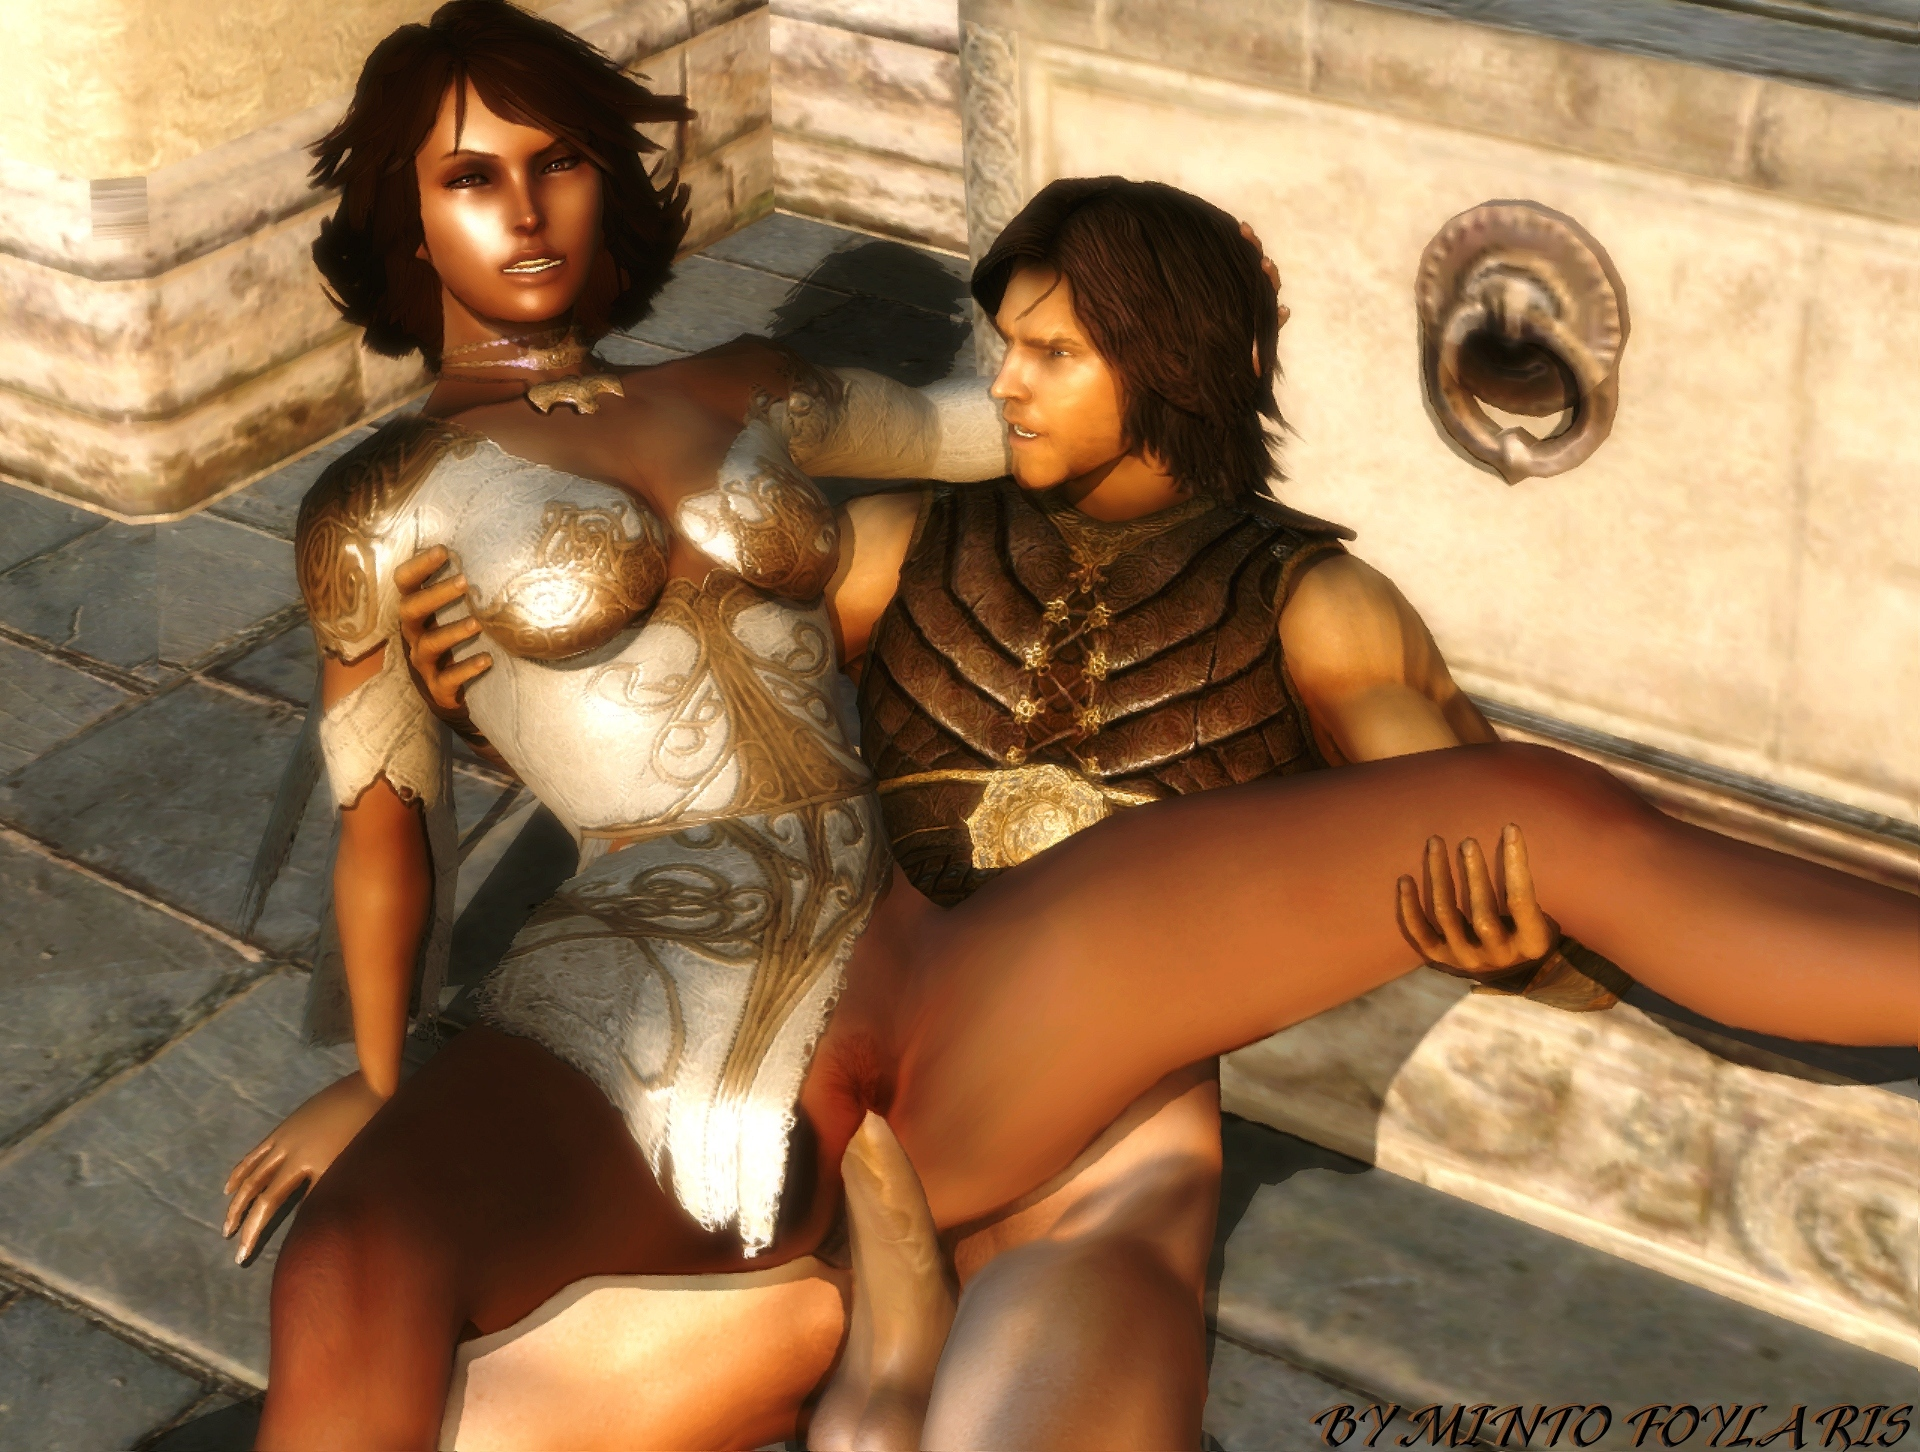 Prince of persia nude hentai girls naked toons